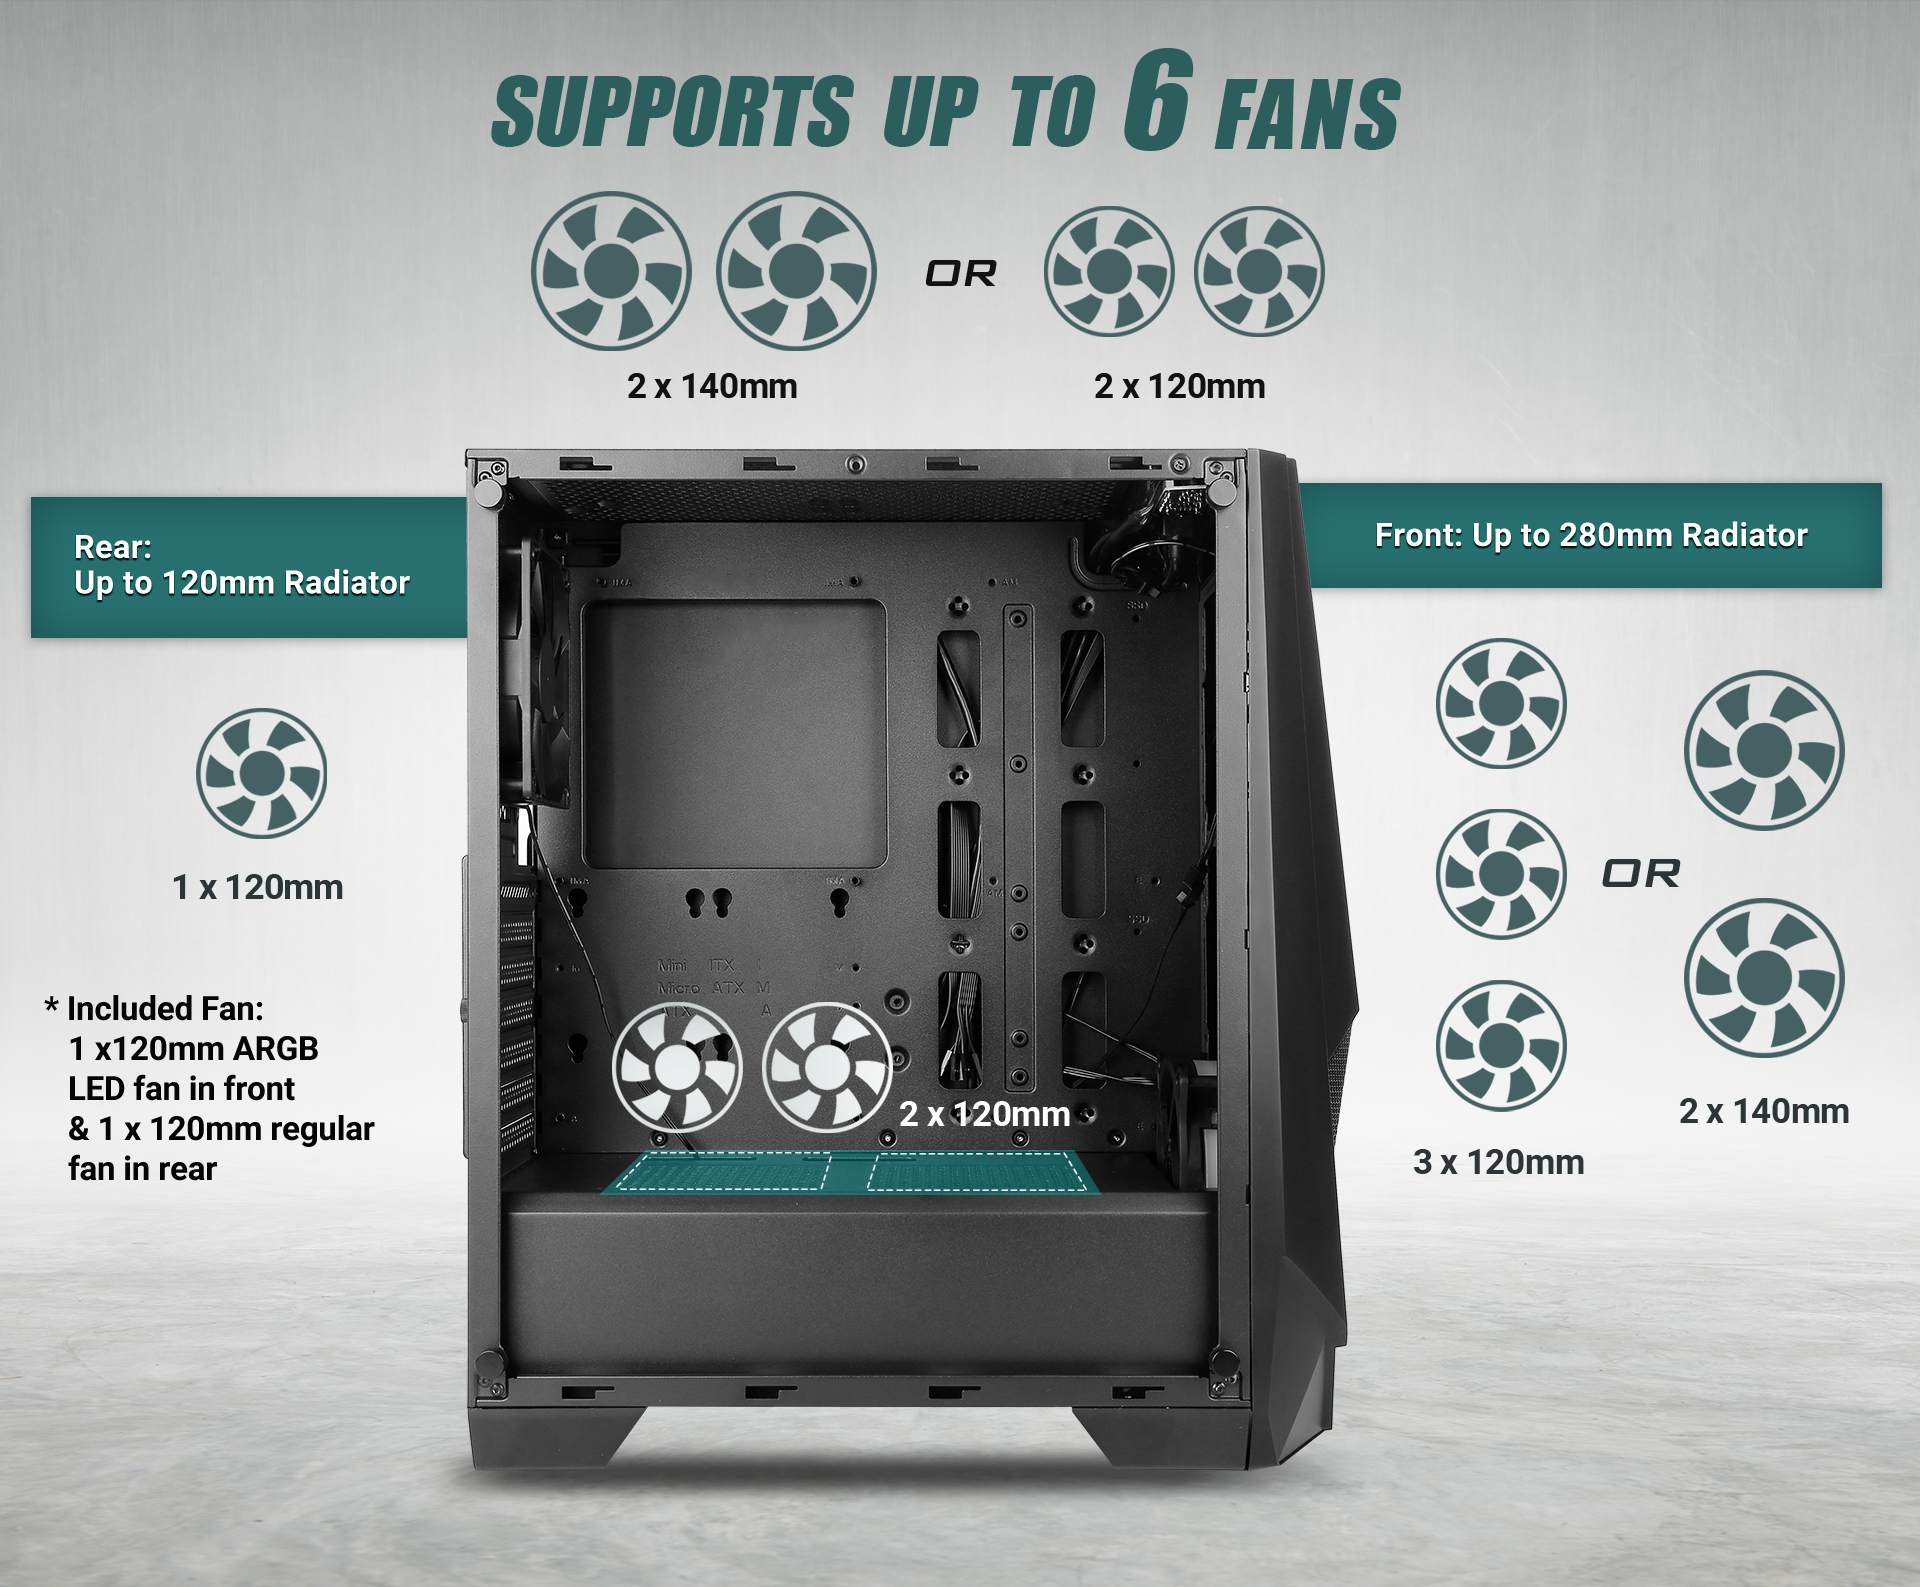 NX Series NX310 Mid Tower ATX Gaming Case supports fan specifications and installation location